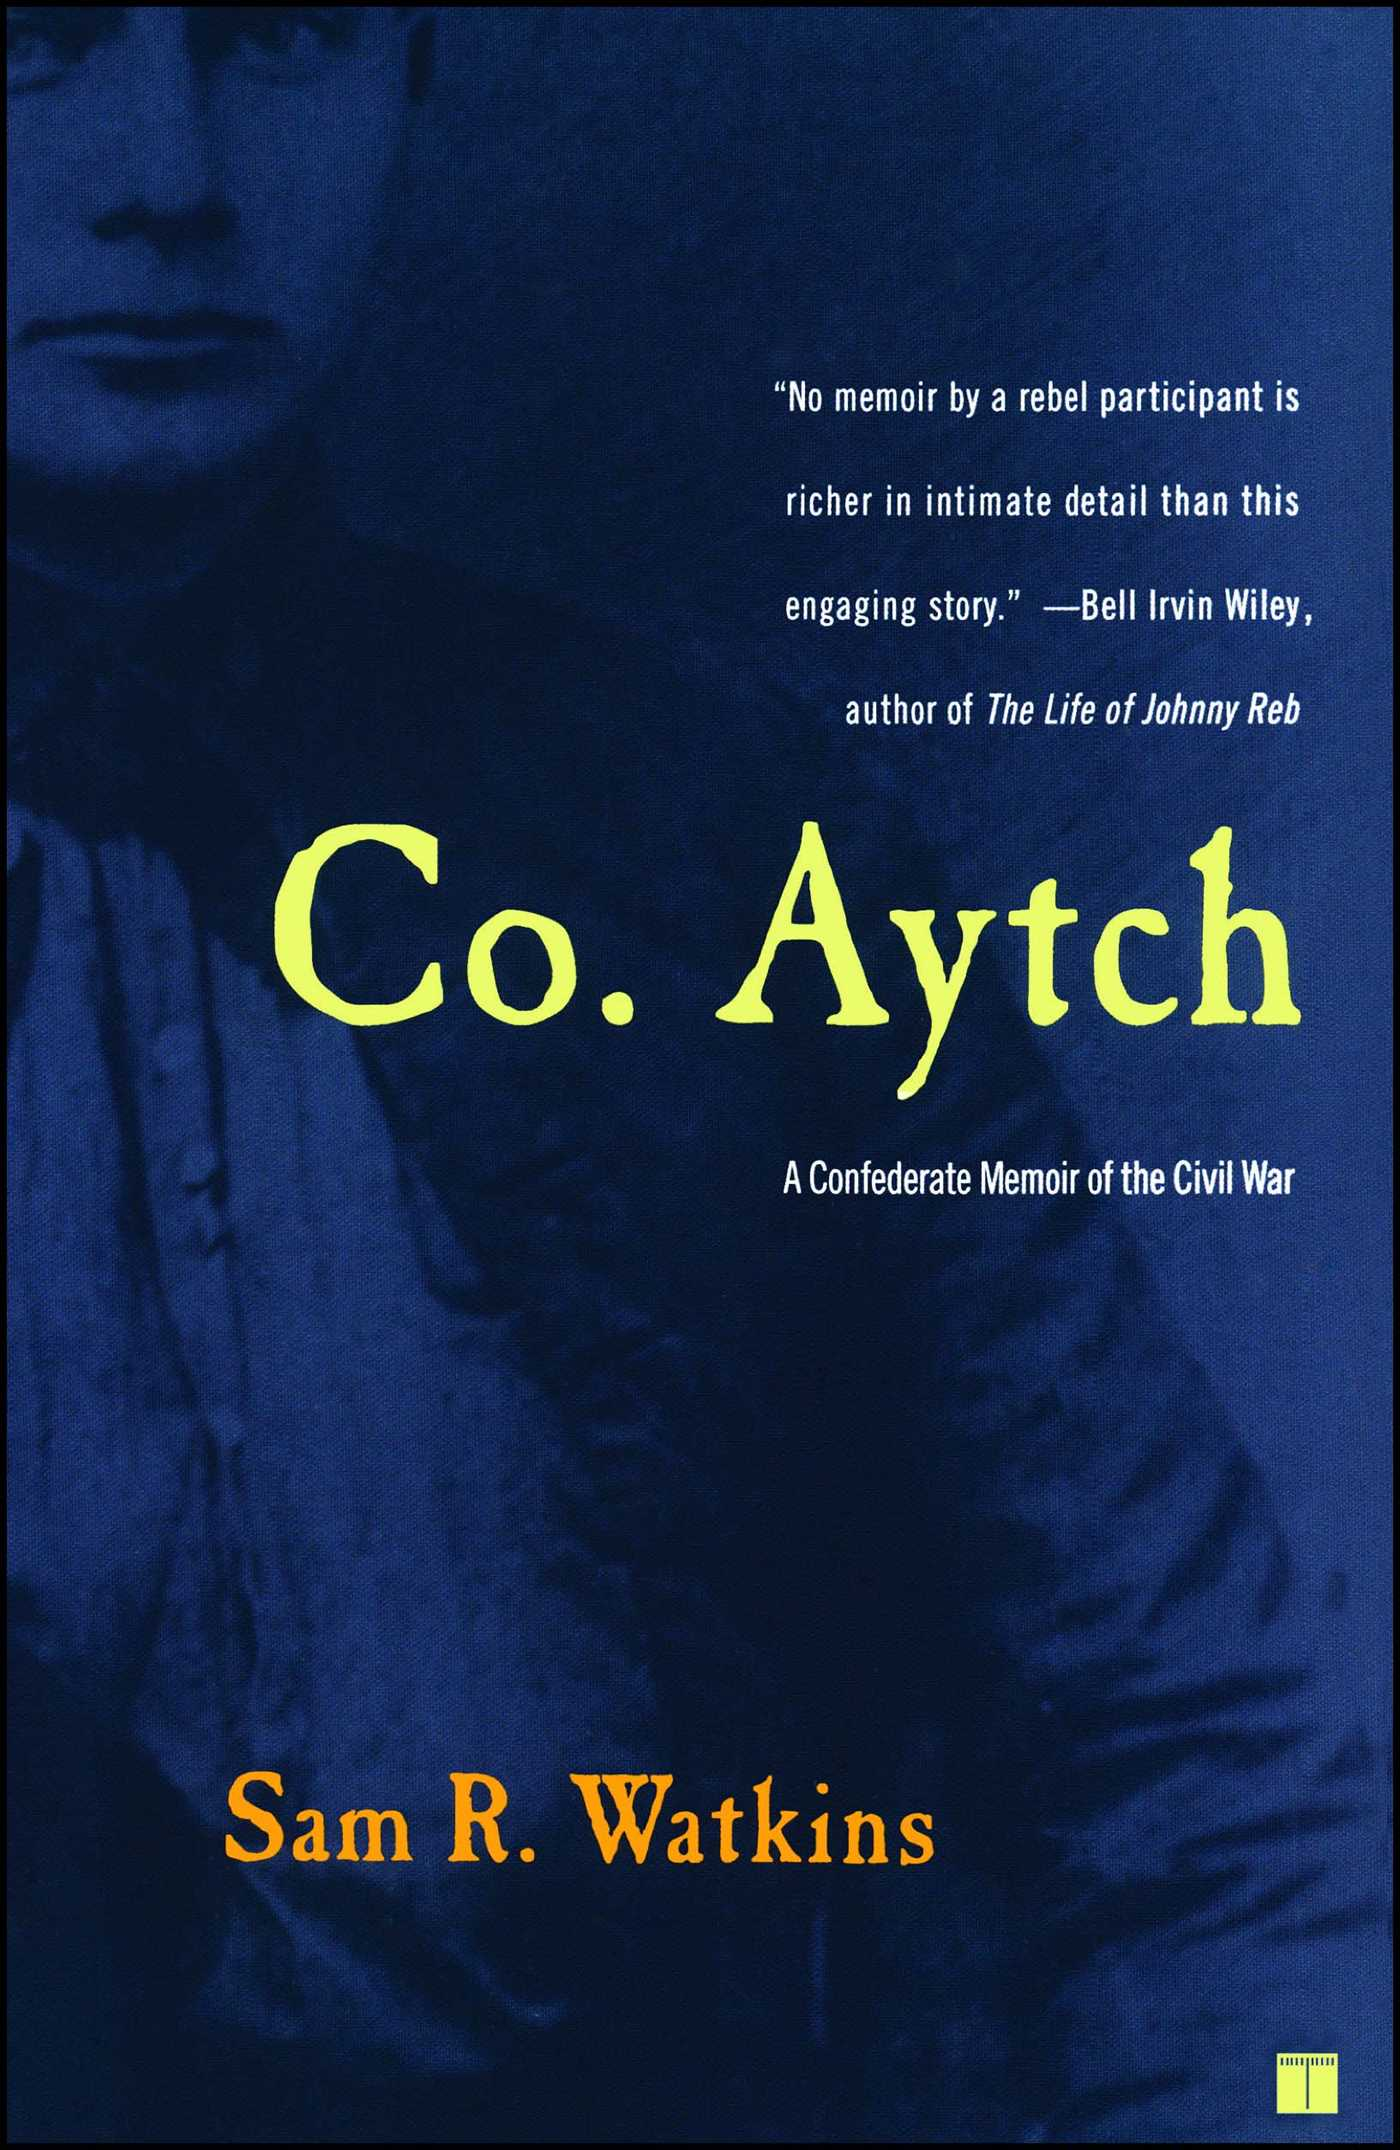 Co-aytch-9780743255417_hr